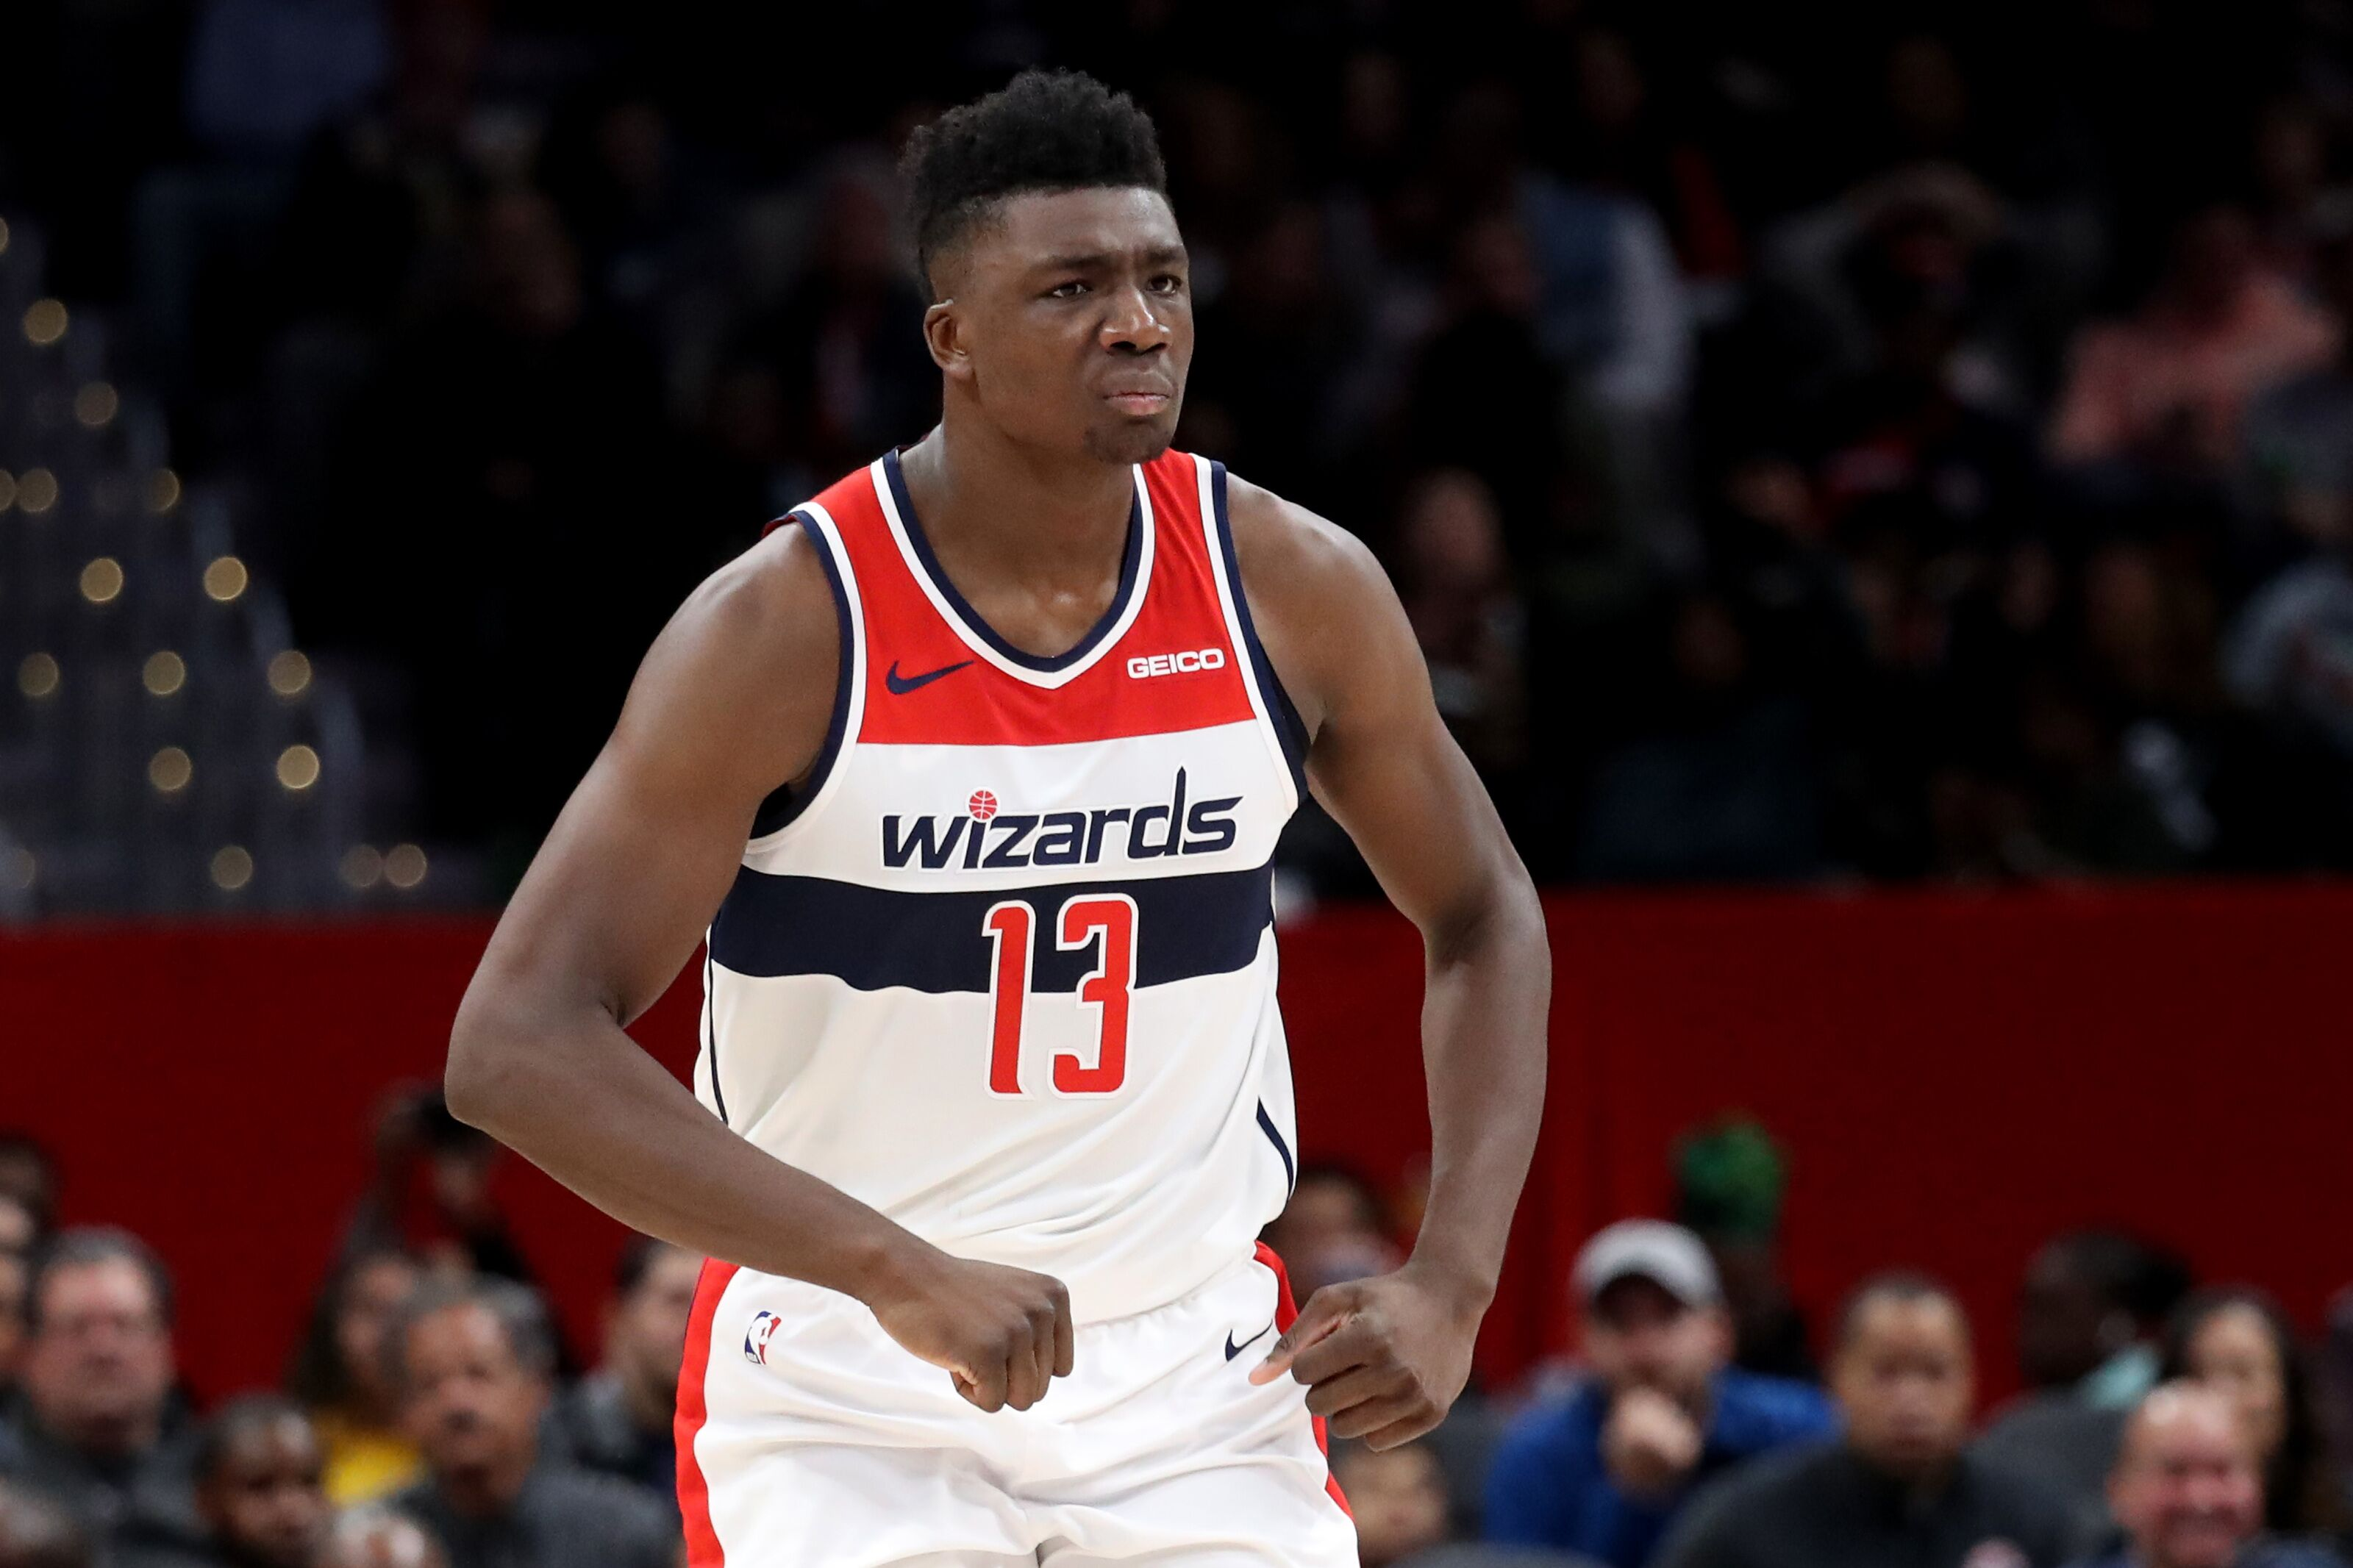 Indiana Basketball: Thomas Bryant continues hot start, others falter